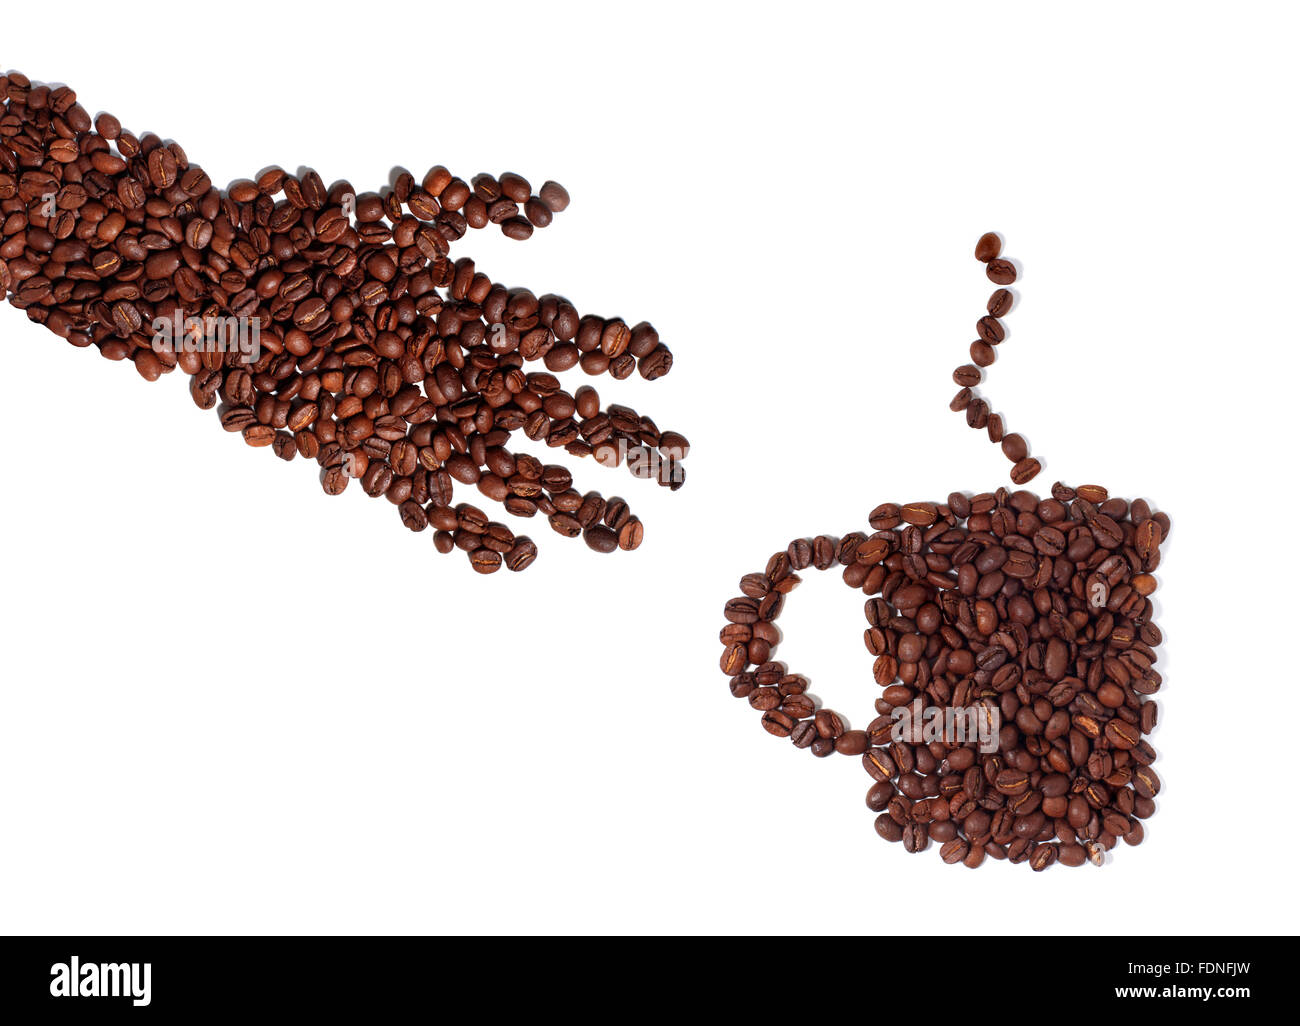 Studio shot of a Hand and coffee cup made of coffee beans - Stock Image